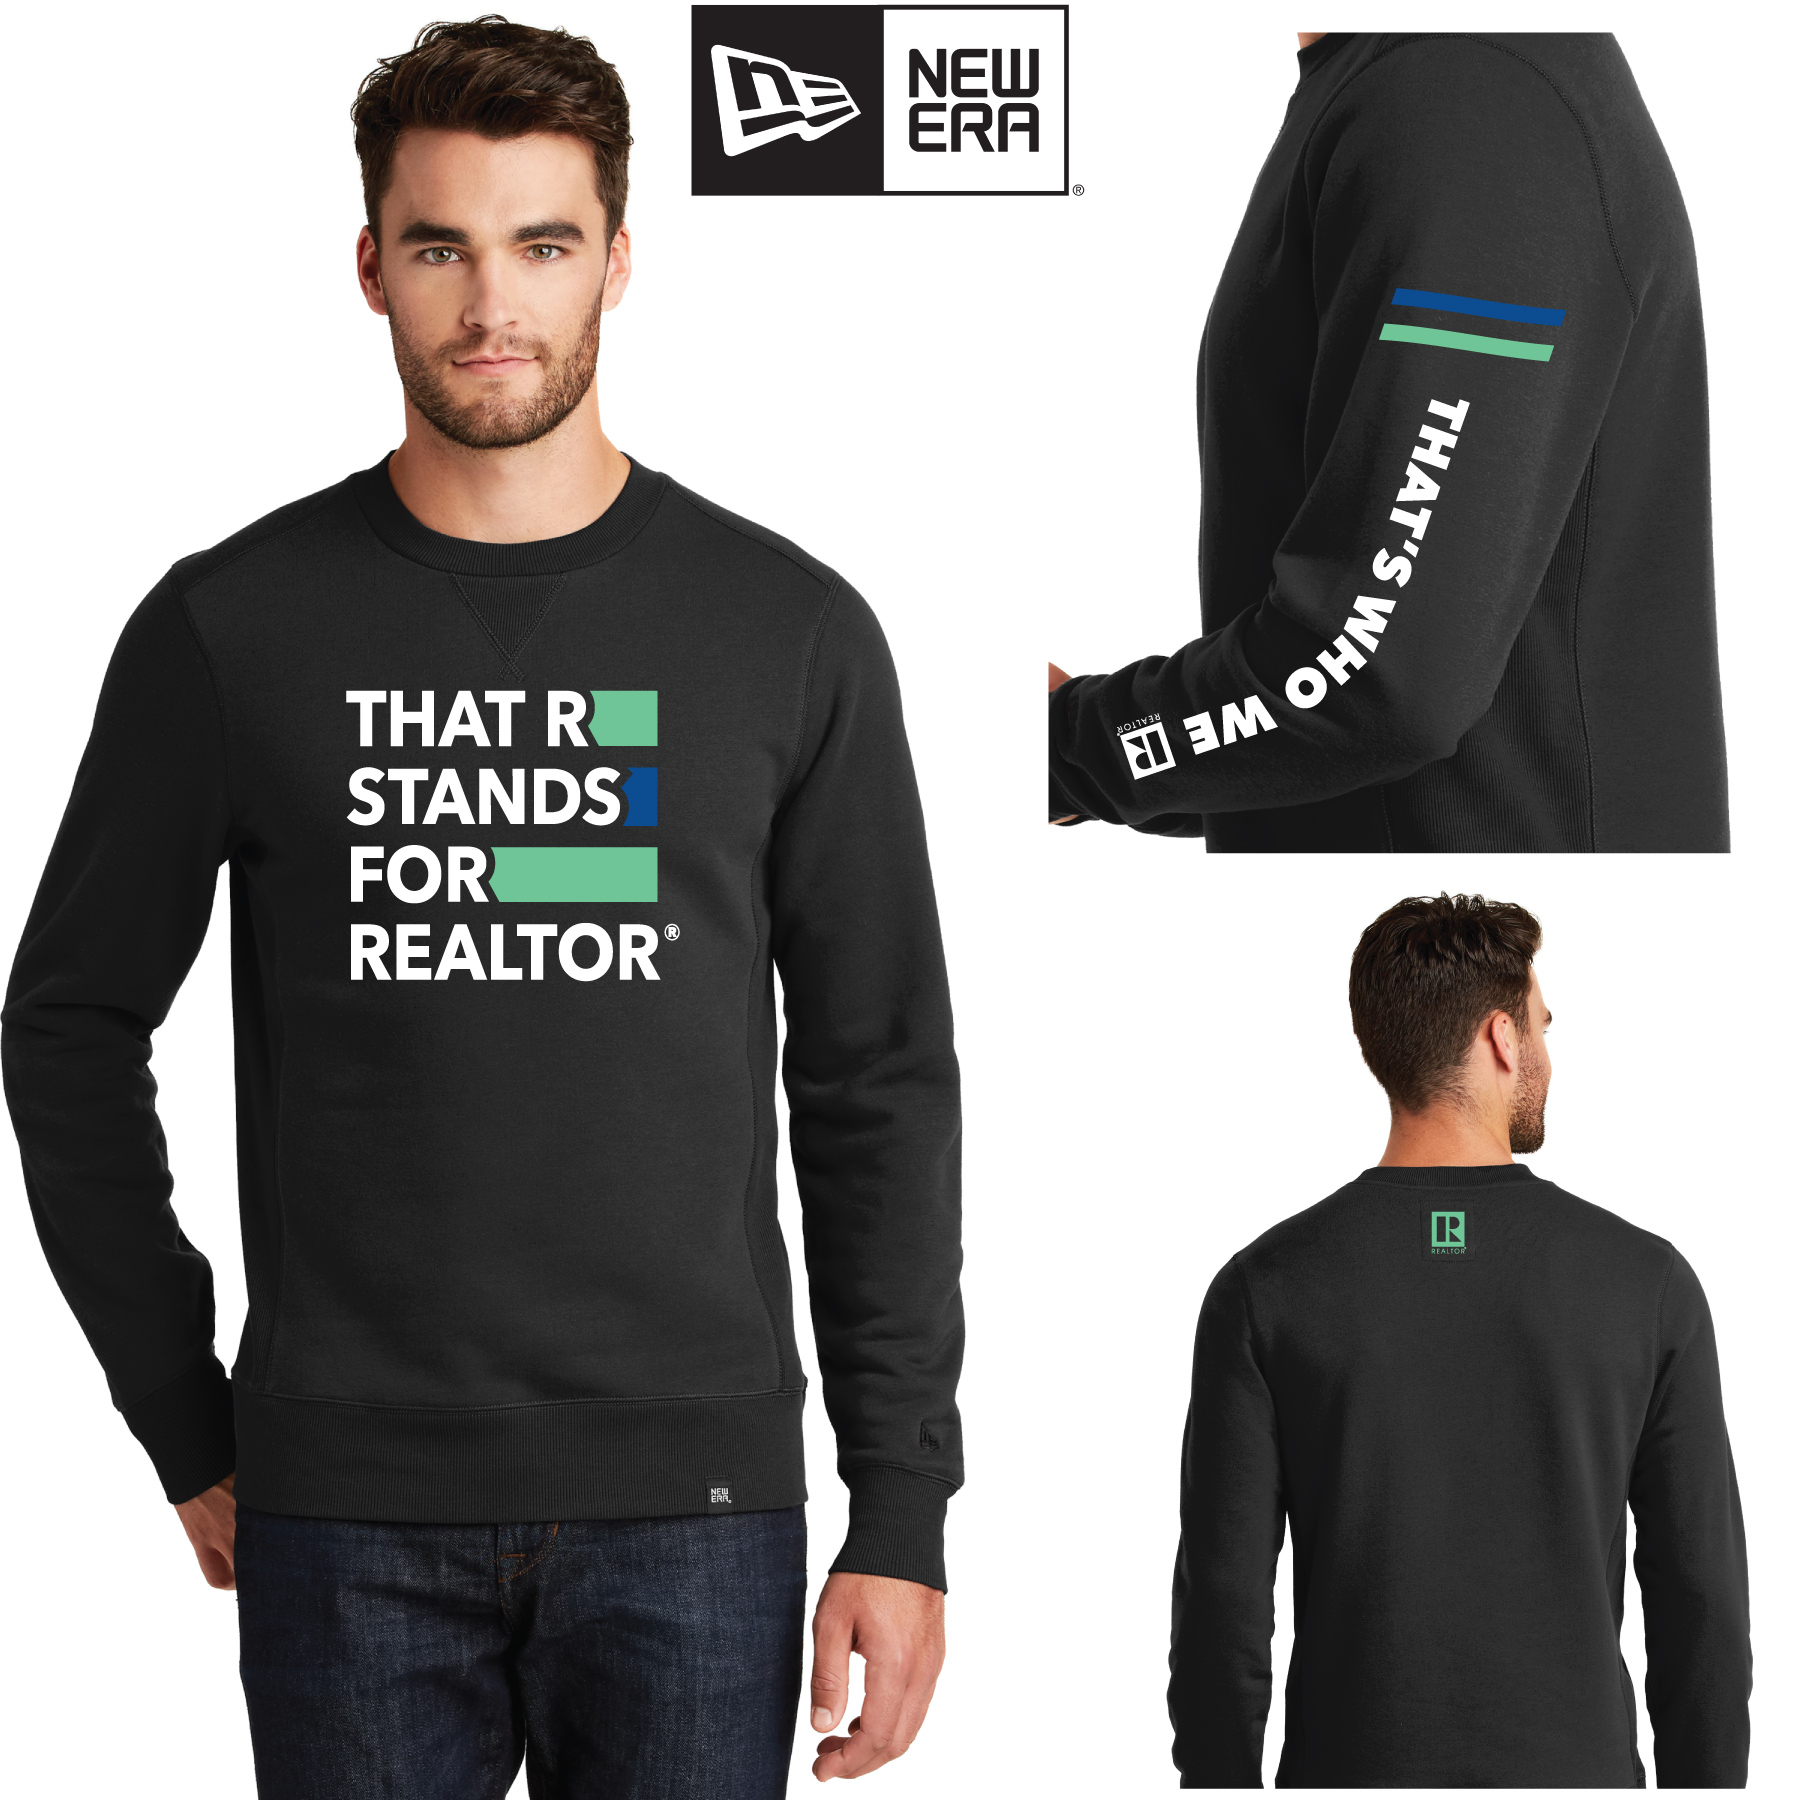 """That R Stands for REALTOR®"" New Era® French Terry Sweatshirt twwr,ThatsWhoWeR,Thats,TWWR,ThatWho,ThatsWho,Twwr,Thats,Whos,We,Ares,TWWR,Sweats,Shirts,Sweatshirts,Necks"